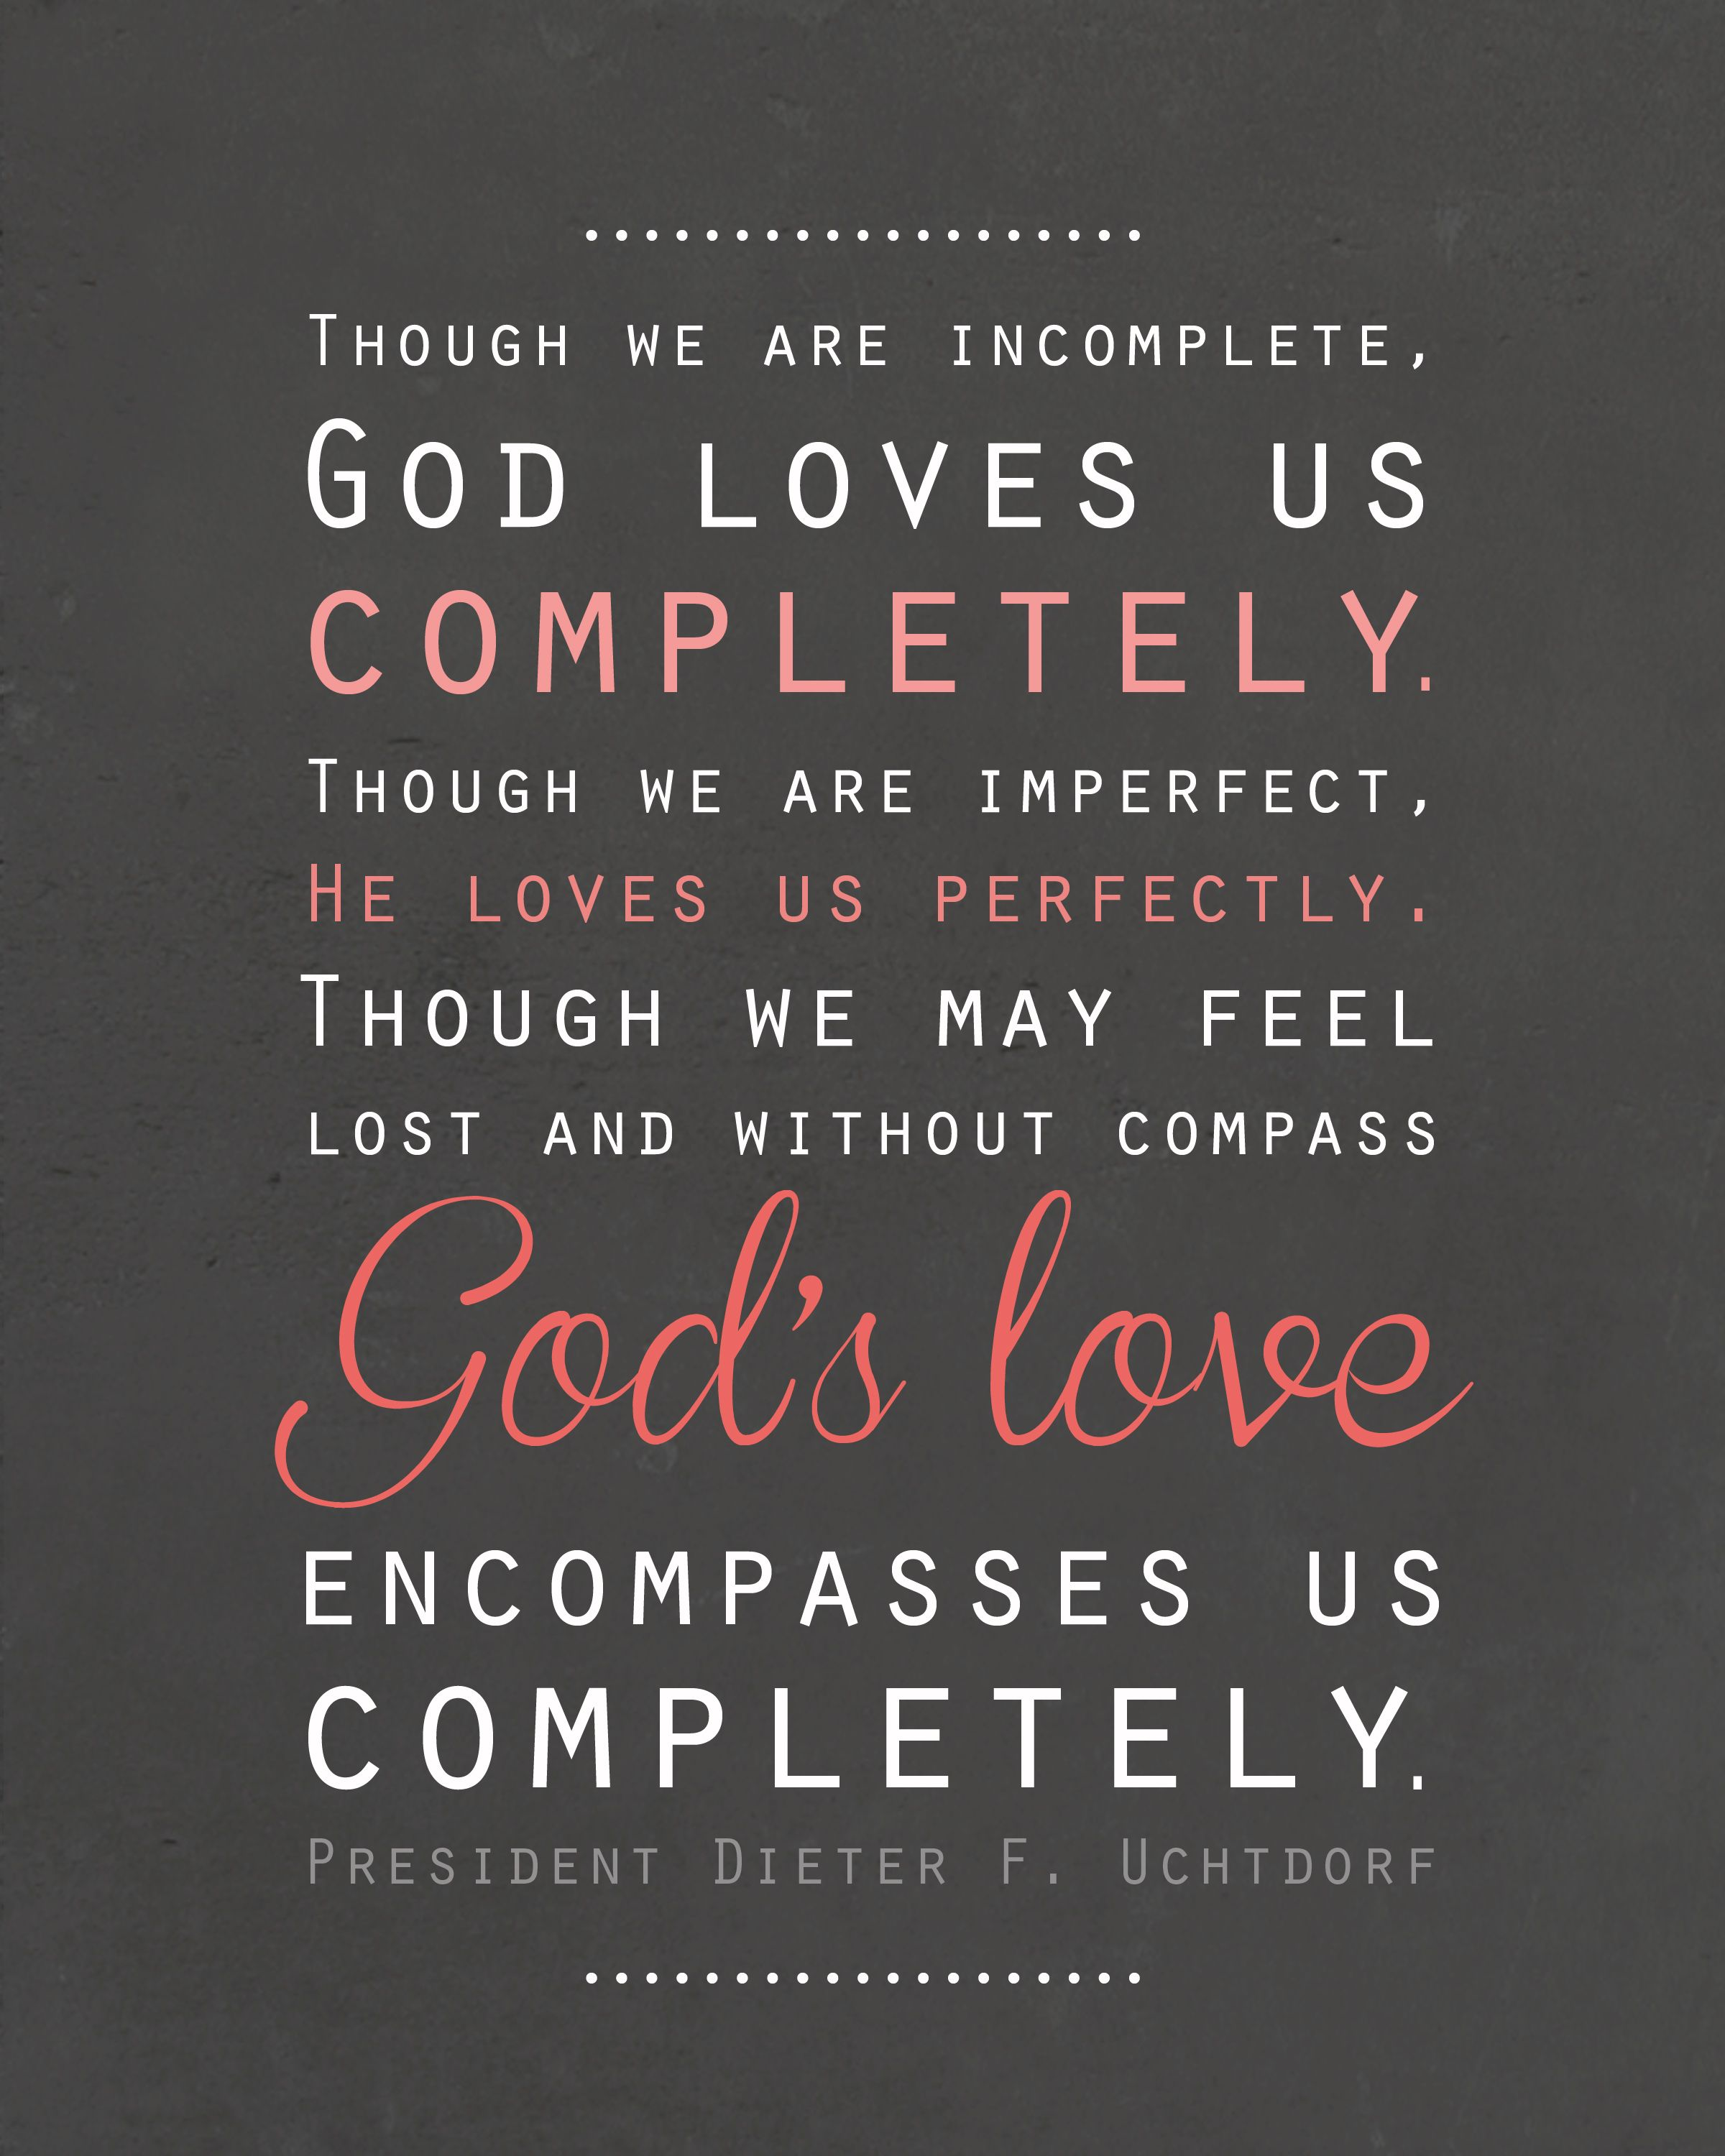 God's Love Quotes Fascinating Free Lds Printable Artwork  Pinterest  Free Churches And